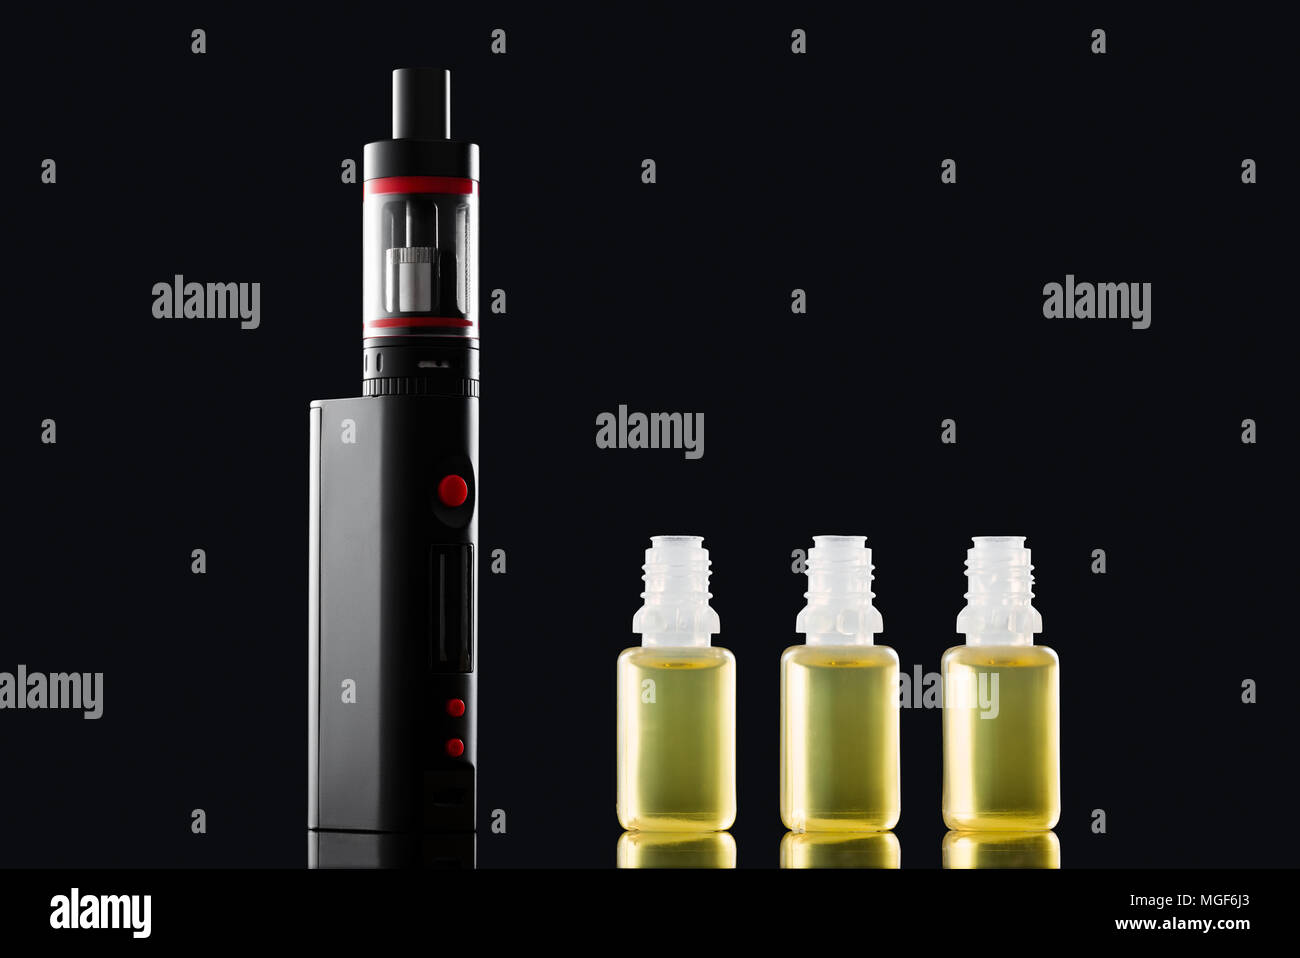 electronic cigarette and liquids - Stock Image